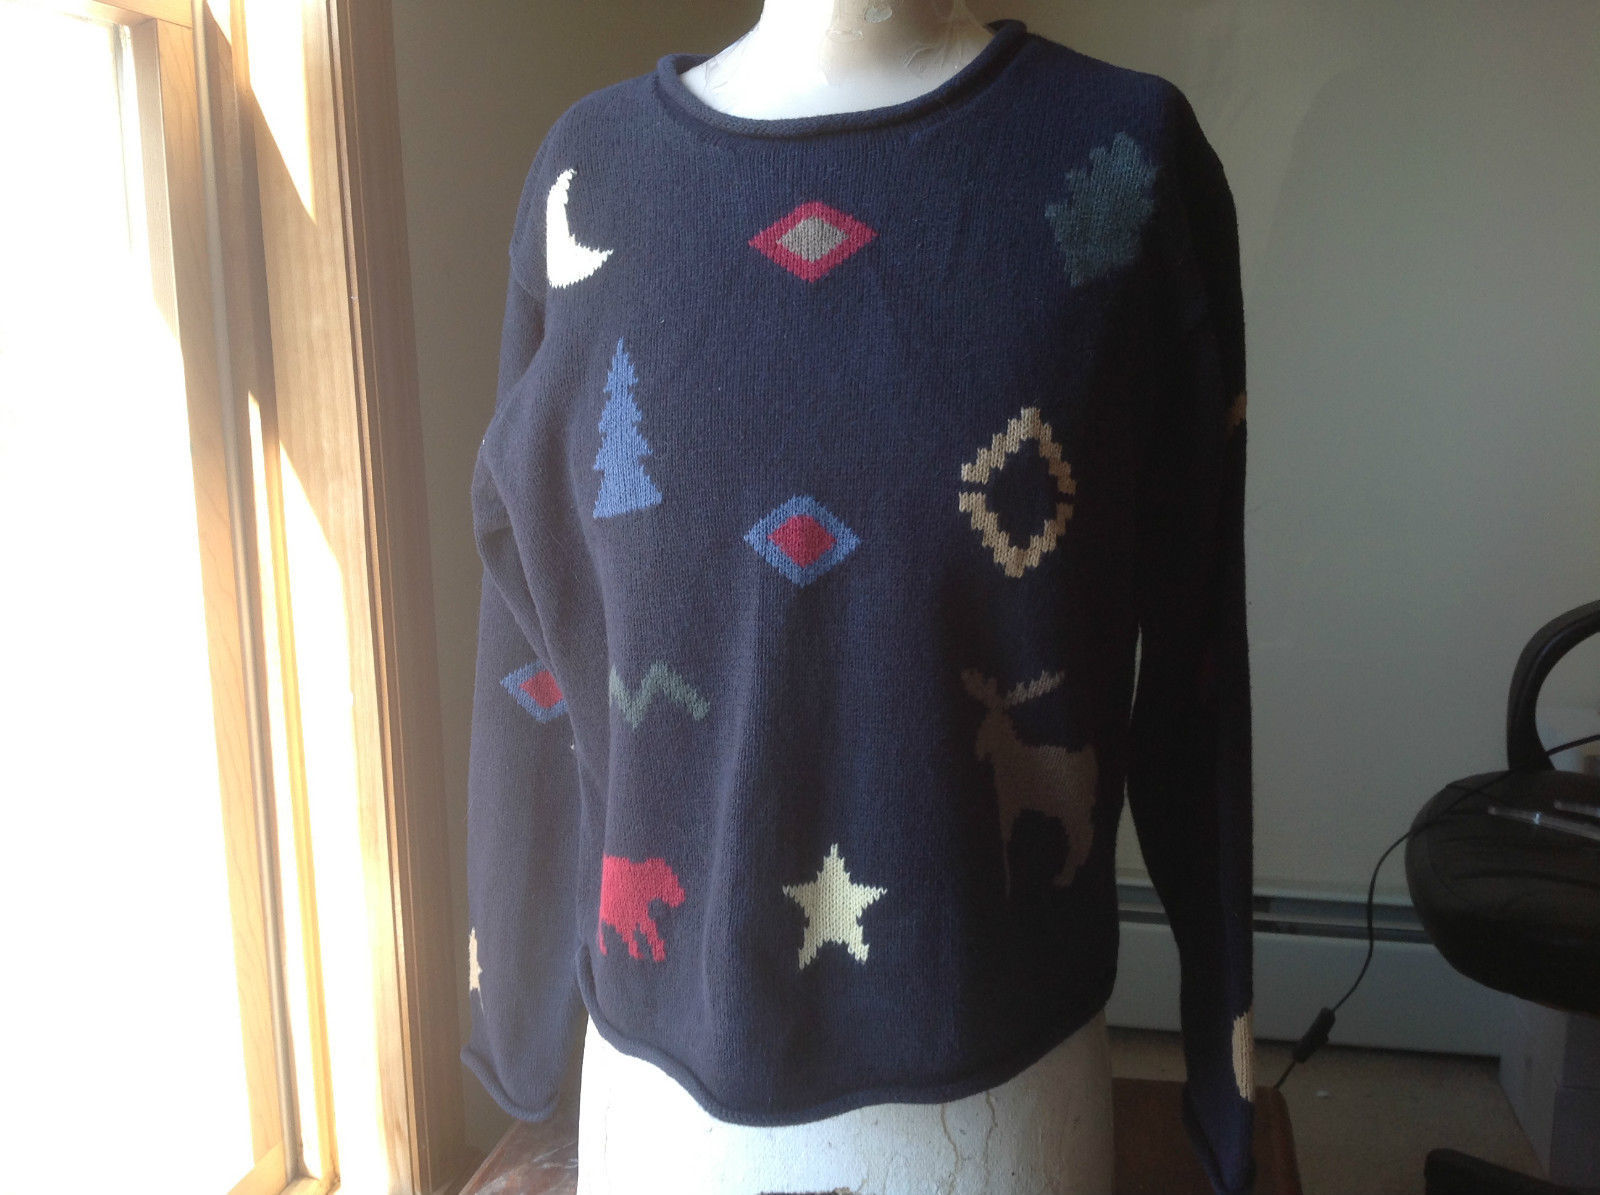 Christoper & Banks Dark Blue Patterned Knit Sweater Rolled Seams Size Medium